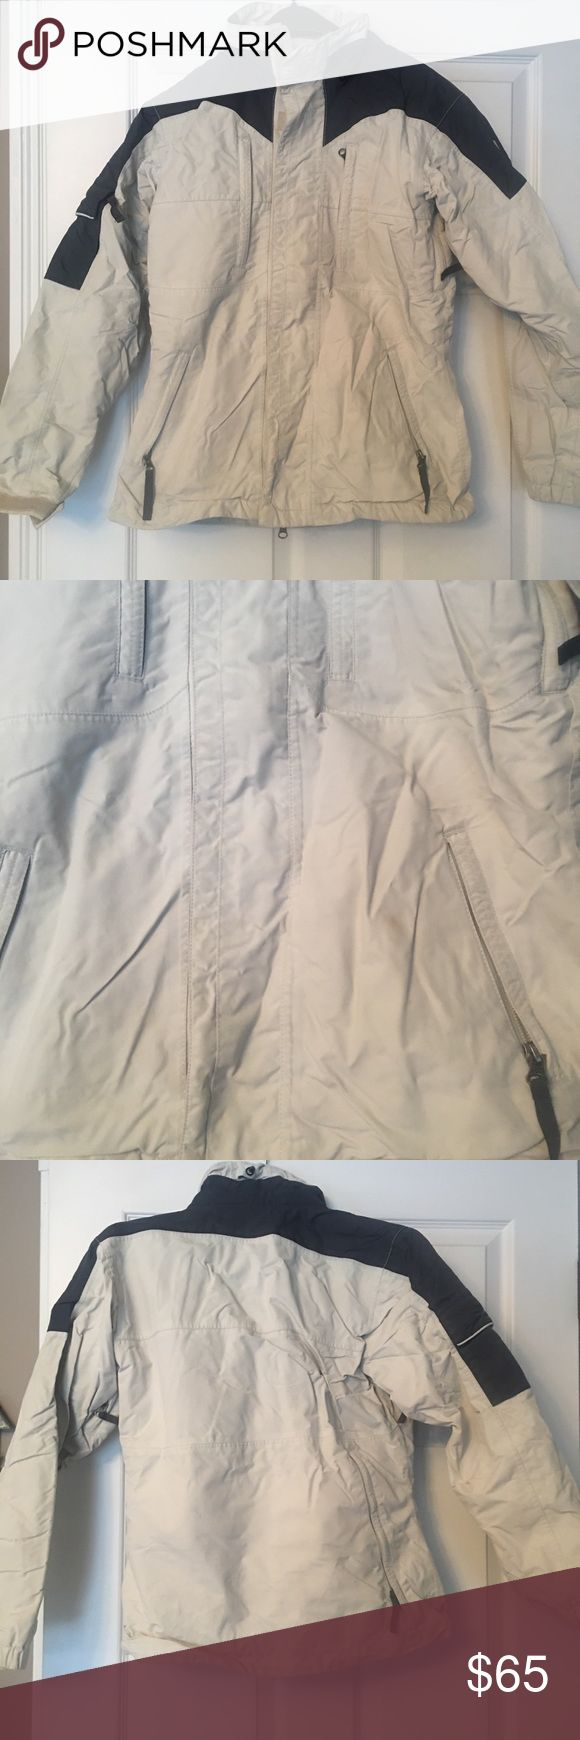 Burton Snowboarding/Skiing Jacket XS Burton jacket- extremely warm!  Small spot on the front that can be dry cleaned/washed (as seen in picture) otherwise great condition!  Lots of pockets throughout jacket including some vent pockets for snow sports. Burton Jackets & Coats